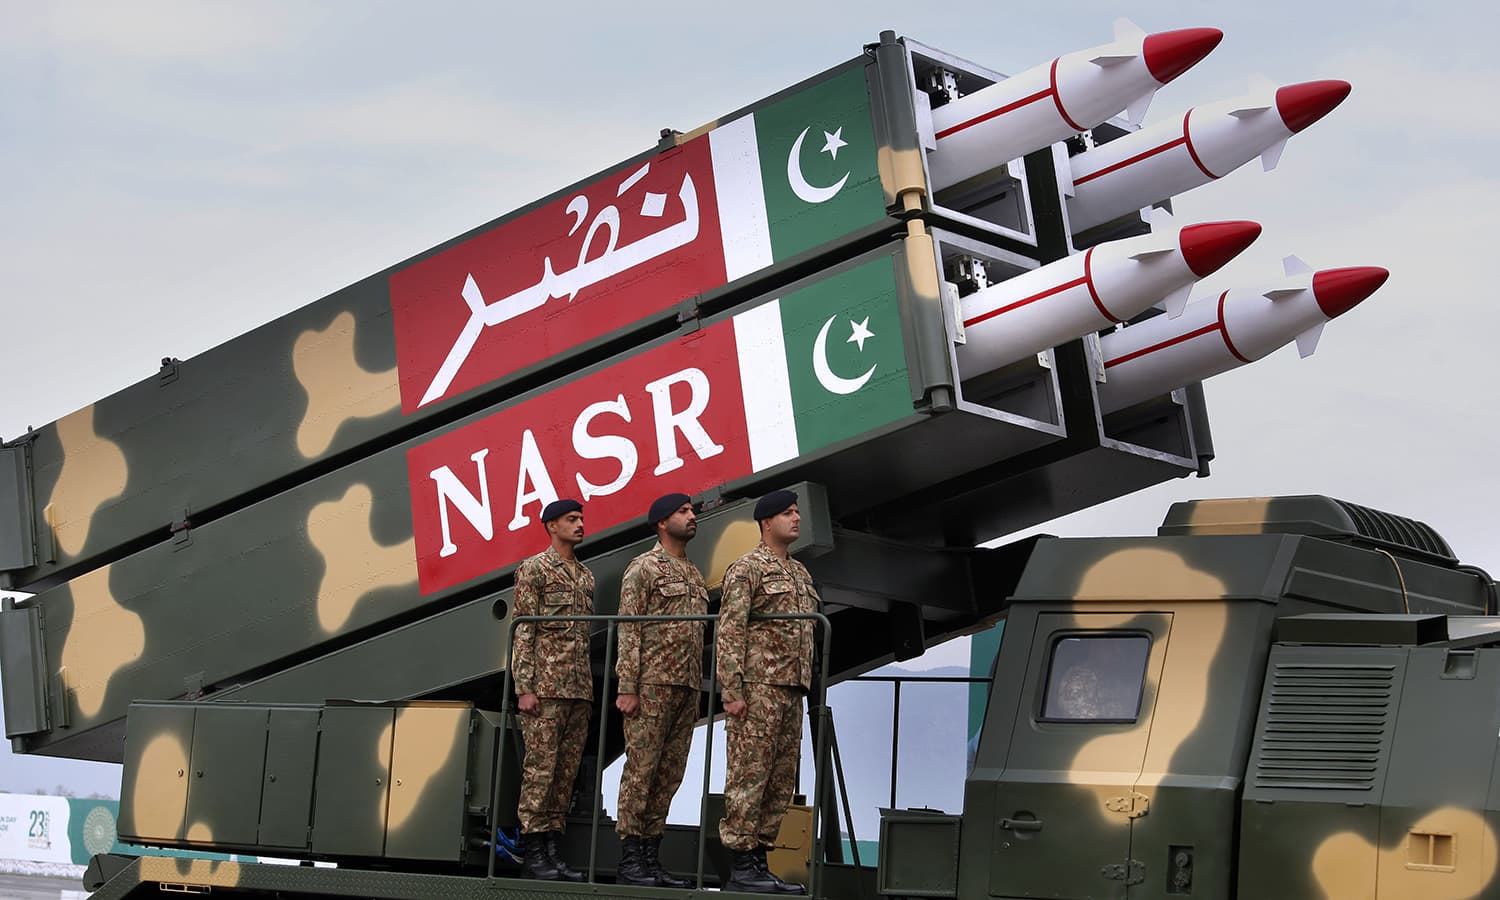 Pakistani-made ballistic missile Nasr rolls down during the military parade. ─ AP